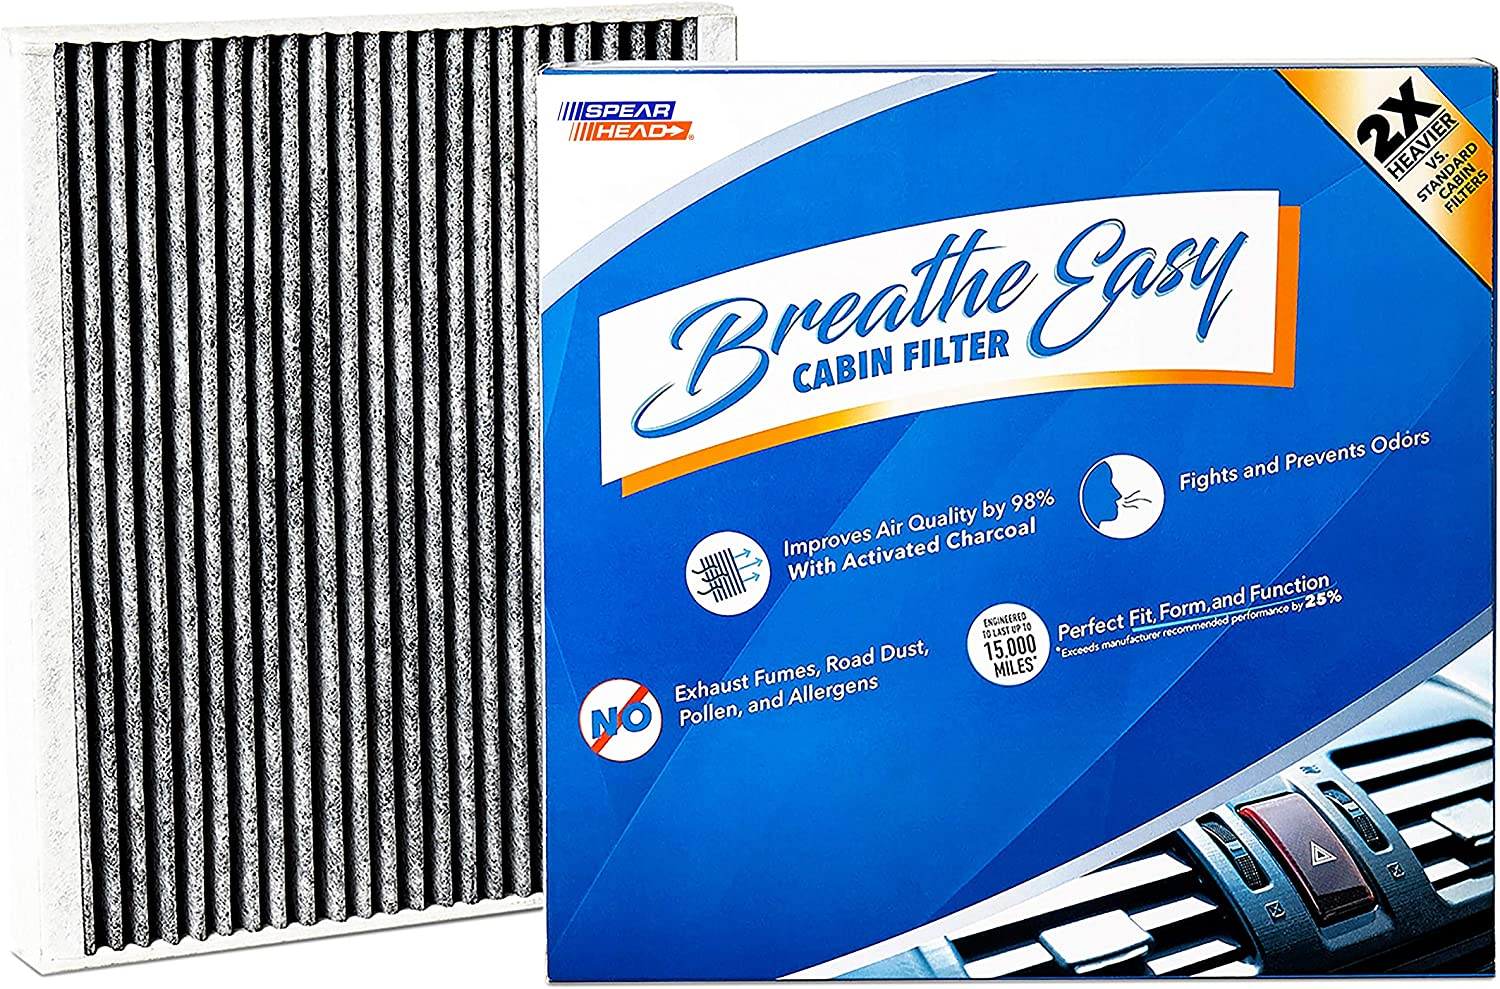 Spearhead Premium Breathe Easy Cabin Filter, Up to 25% Longer Life w/Activated Carbon (BE-728)